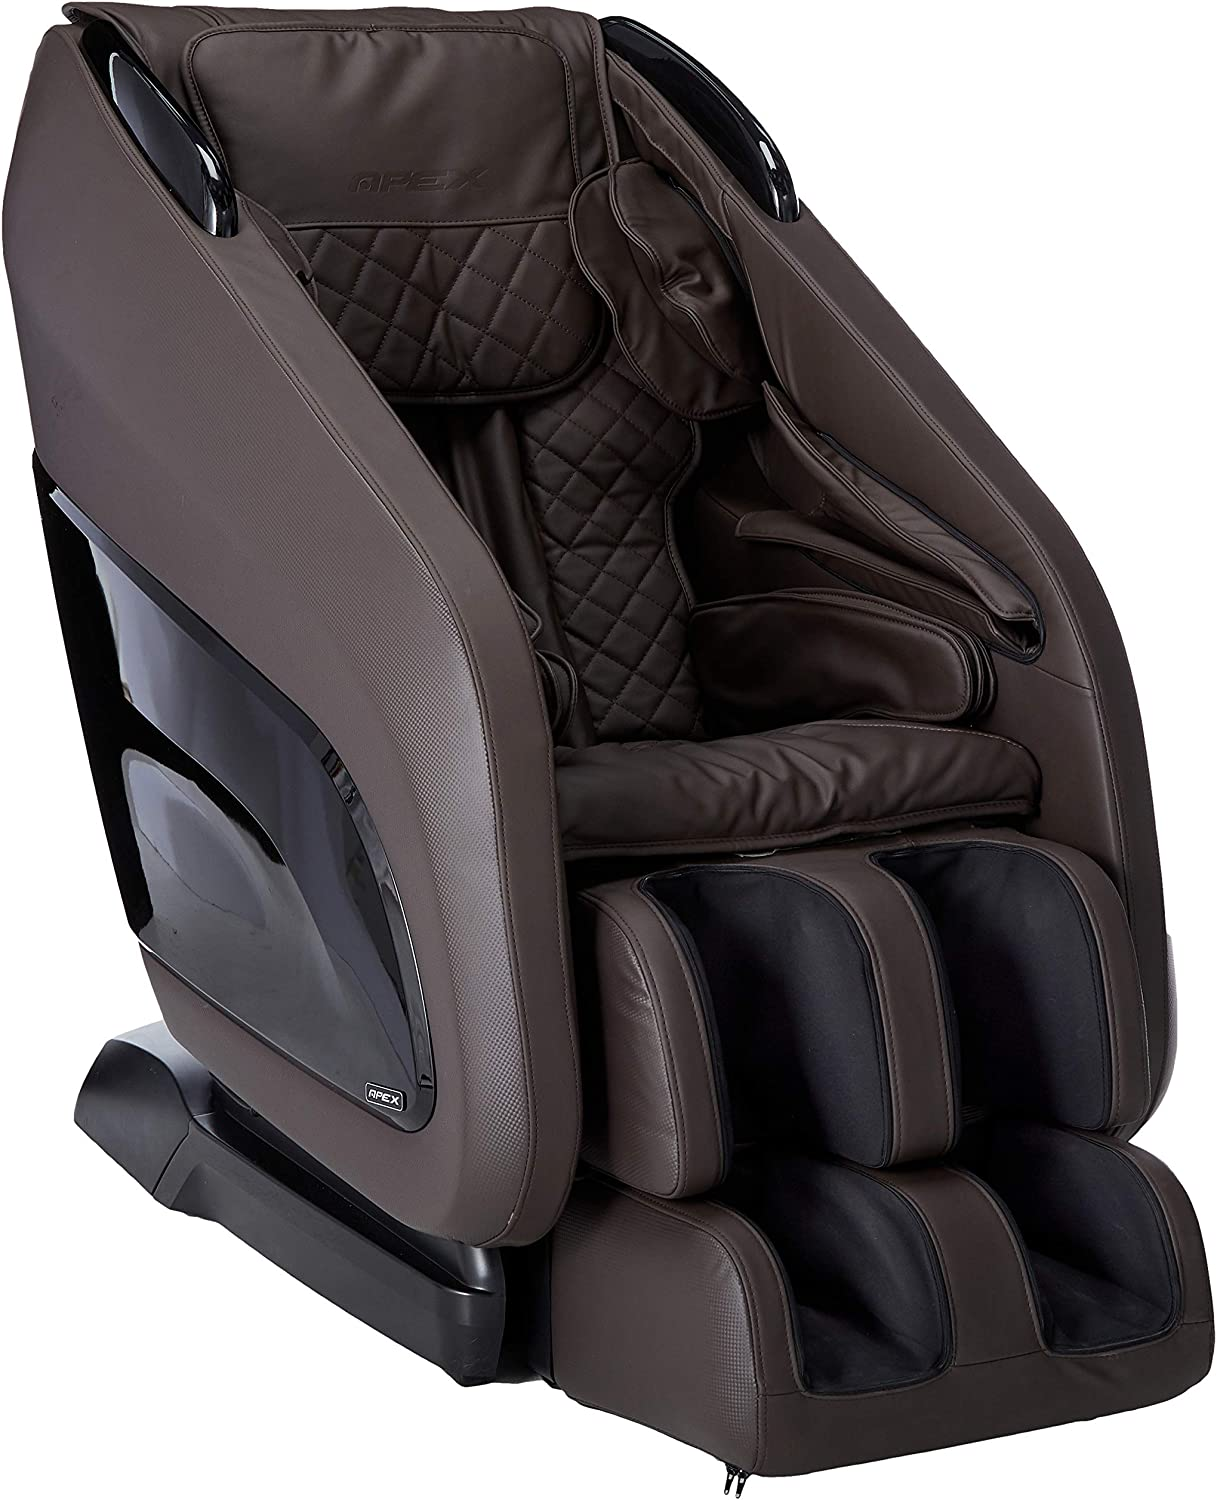 Titan Bombing free shipping Chair Selling rankings Apex AP- Zero Foot Massage S Gravity Rollers